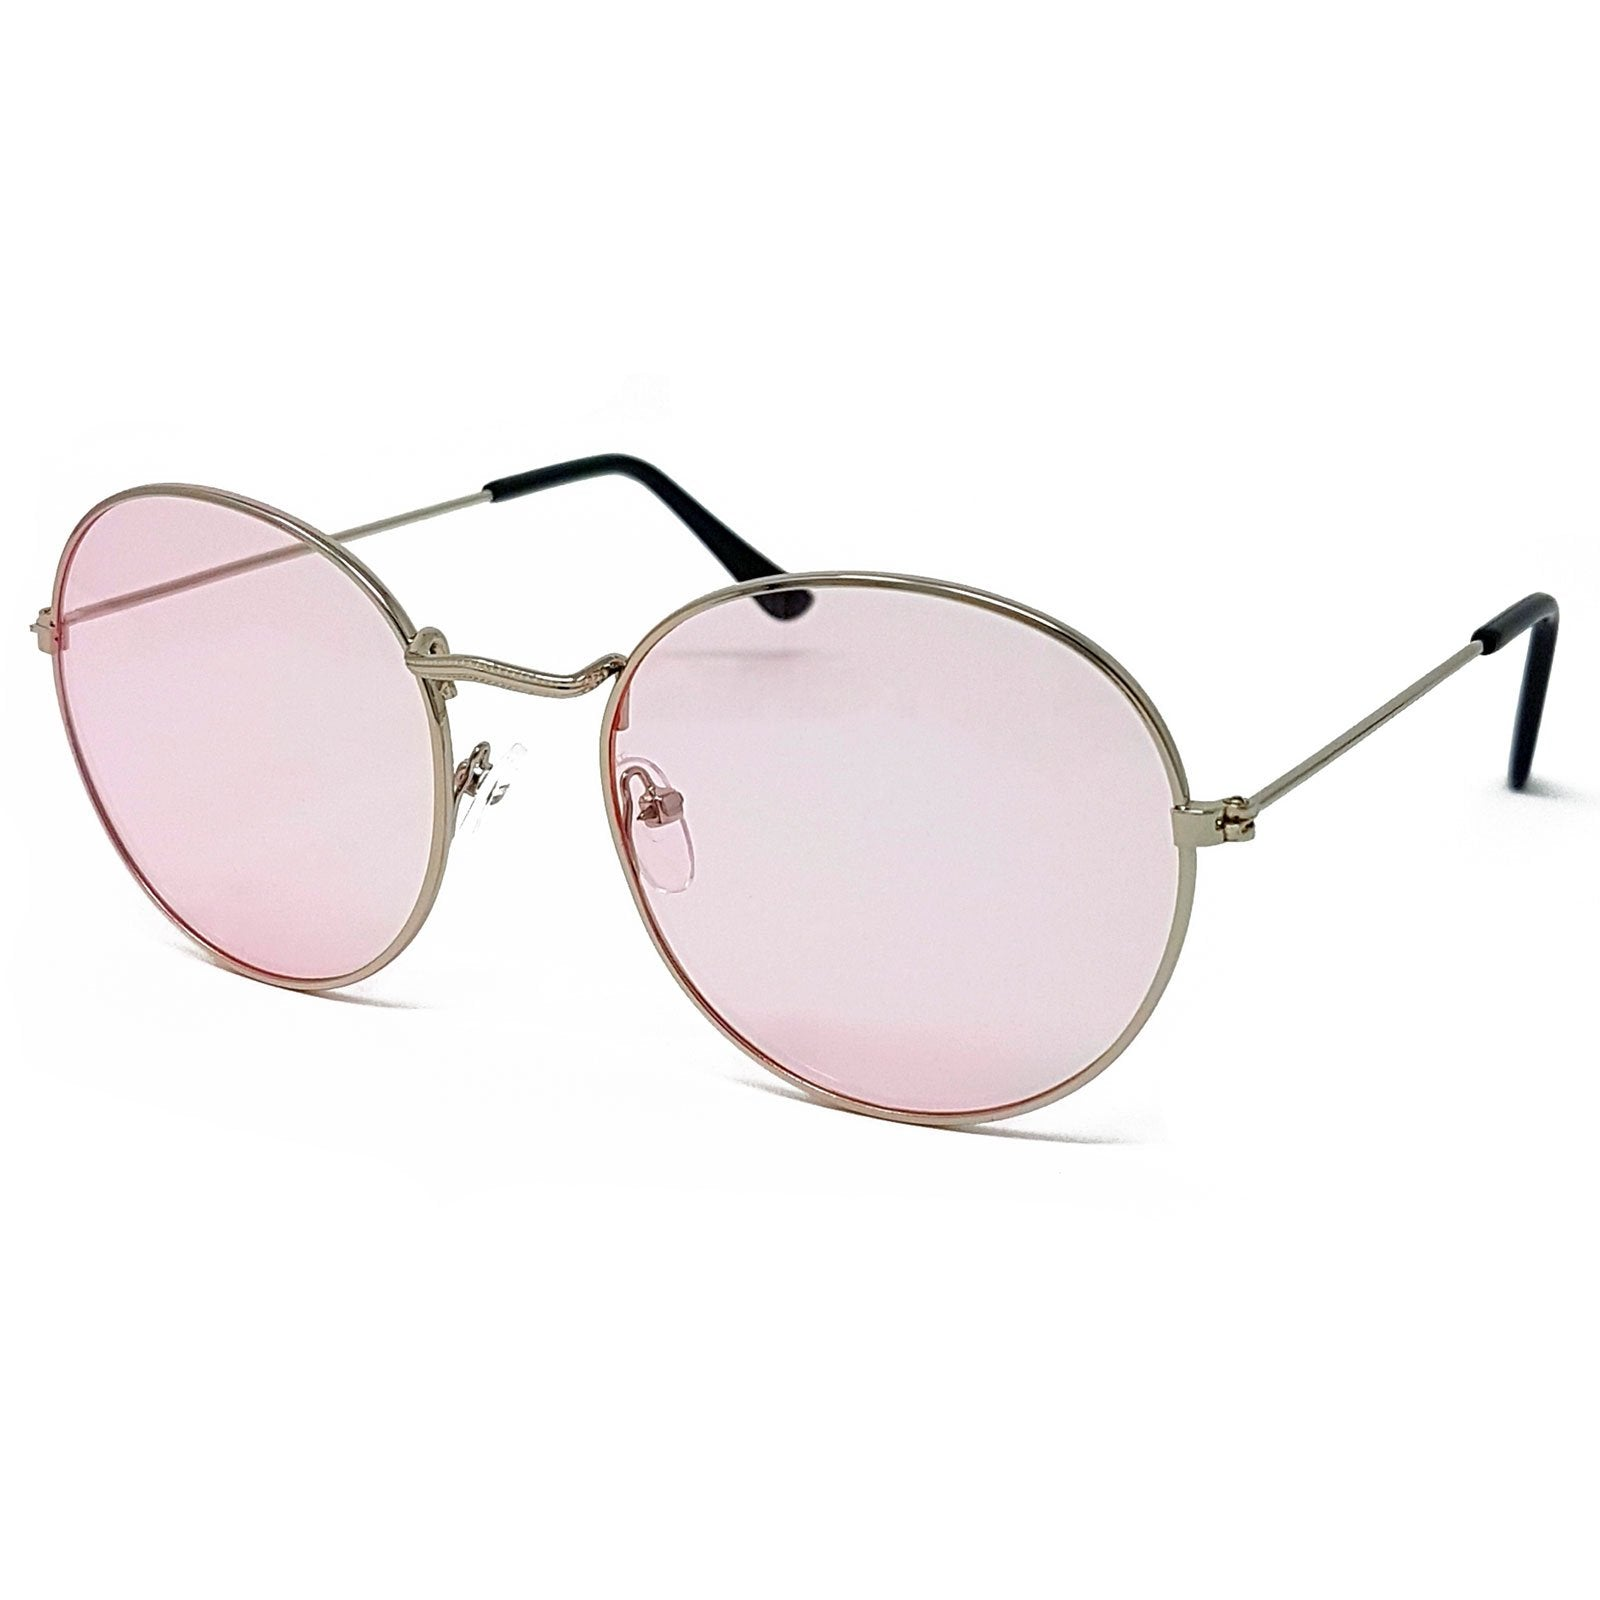 Wholesale Flat Top Round Lens Sunglasses - Silver Frame, Light Pink Tint Lens